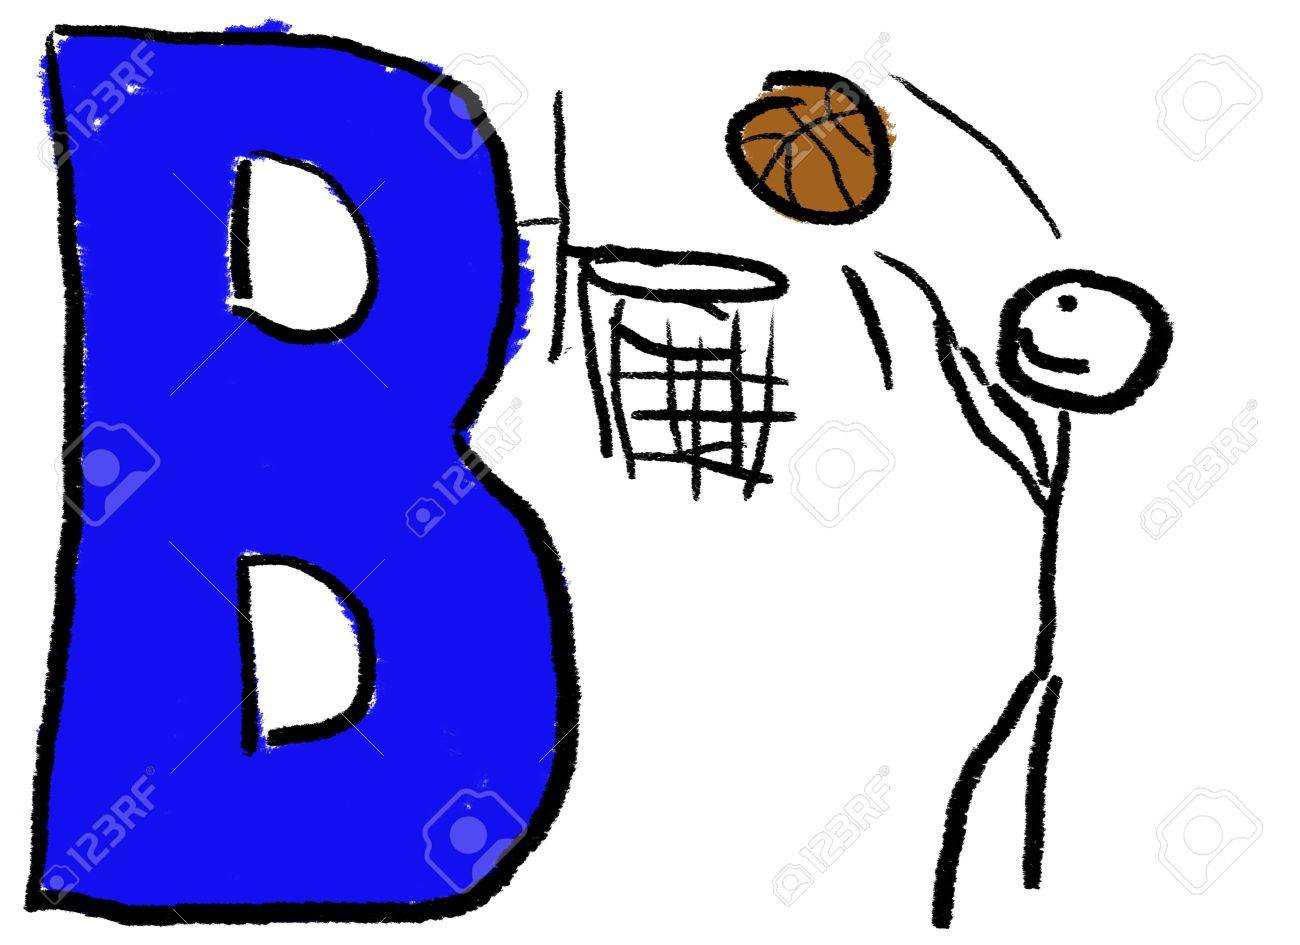 Image result for Letter B playing